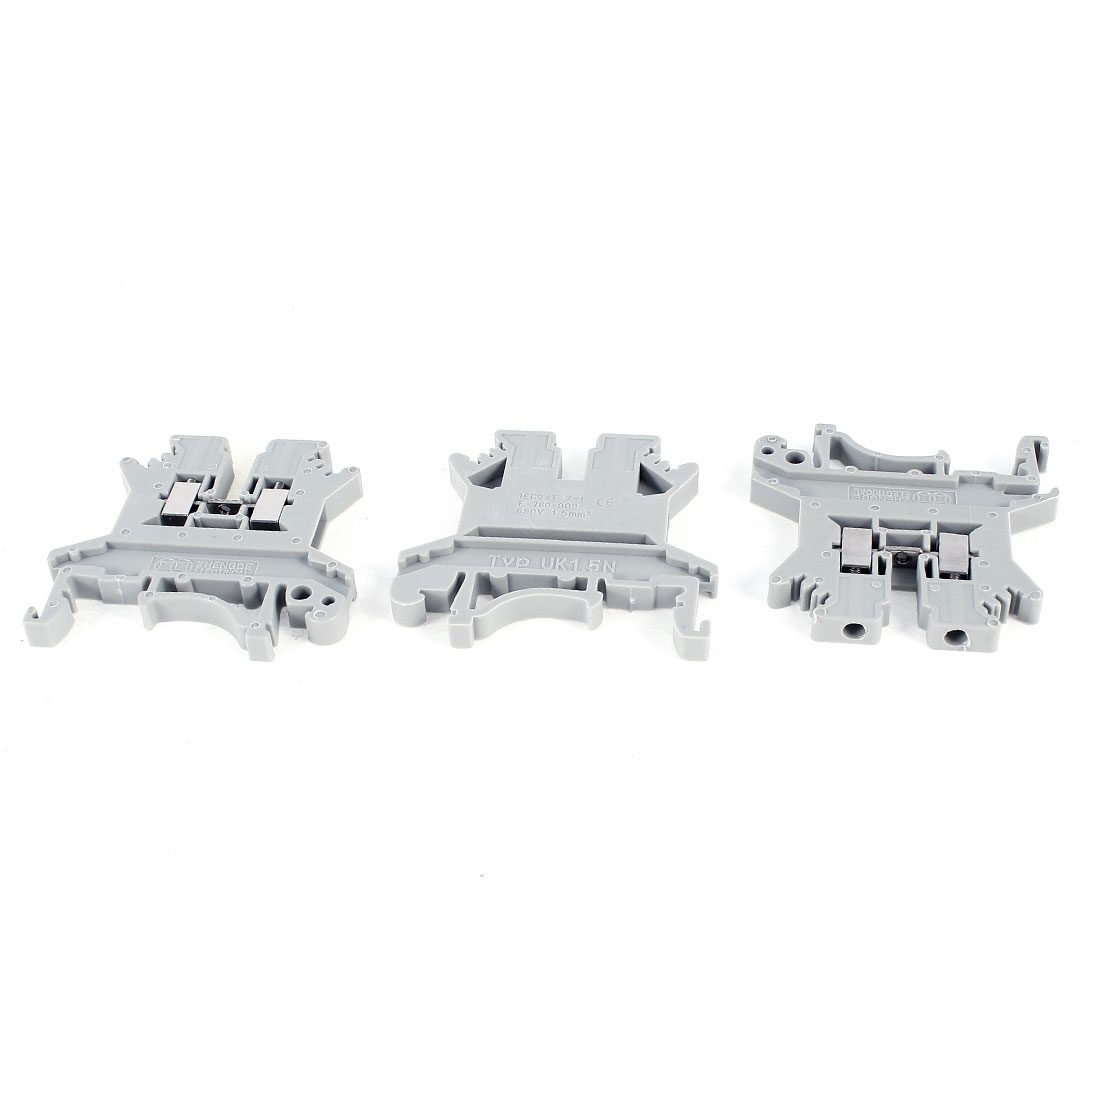 3 Pieces 890V UK1.5N Gray Plastic Shell Screw Contact Terminal Block Connector